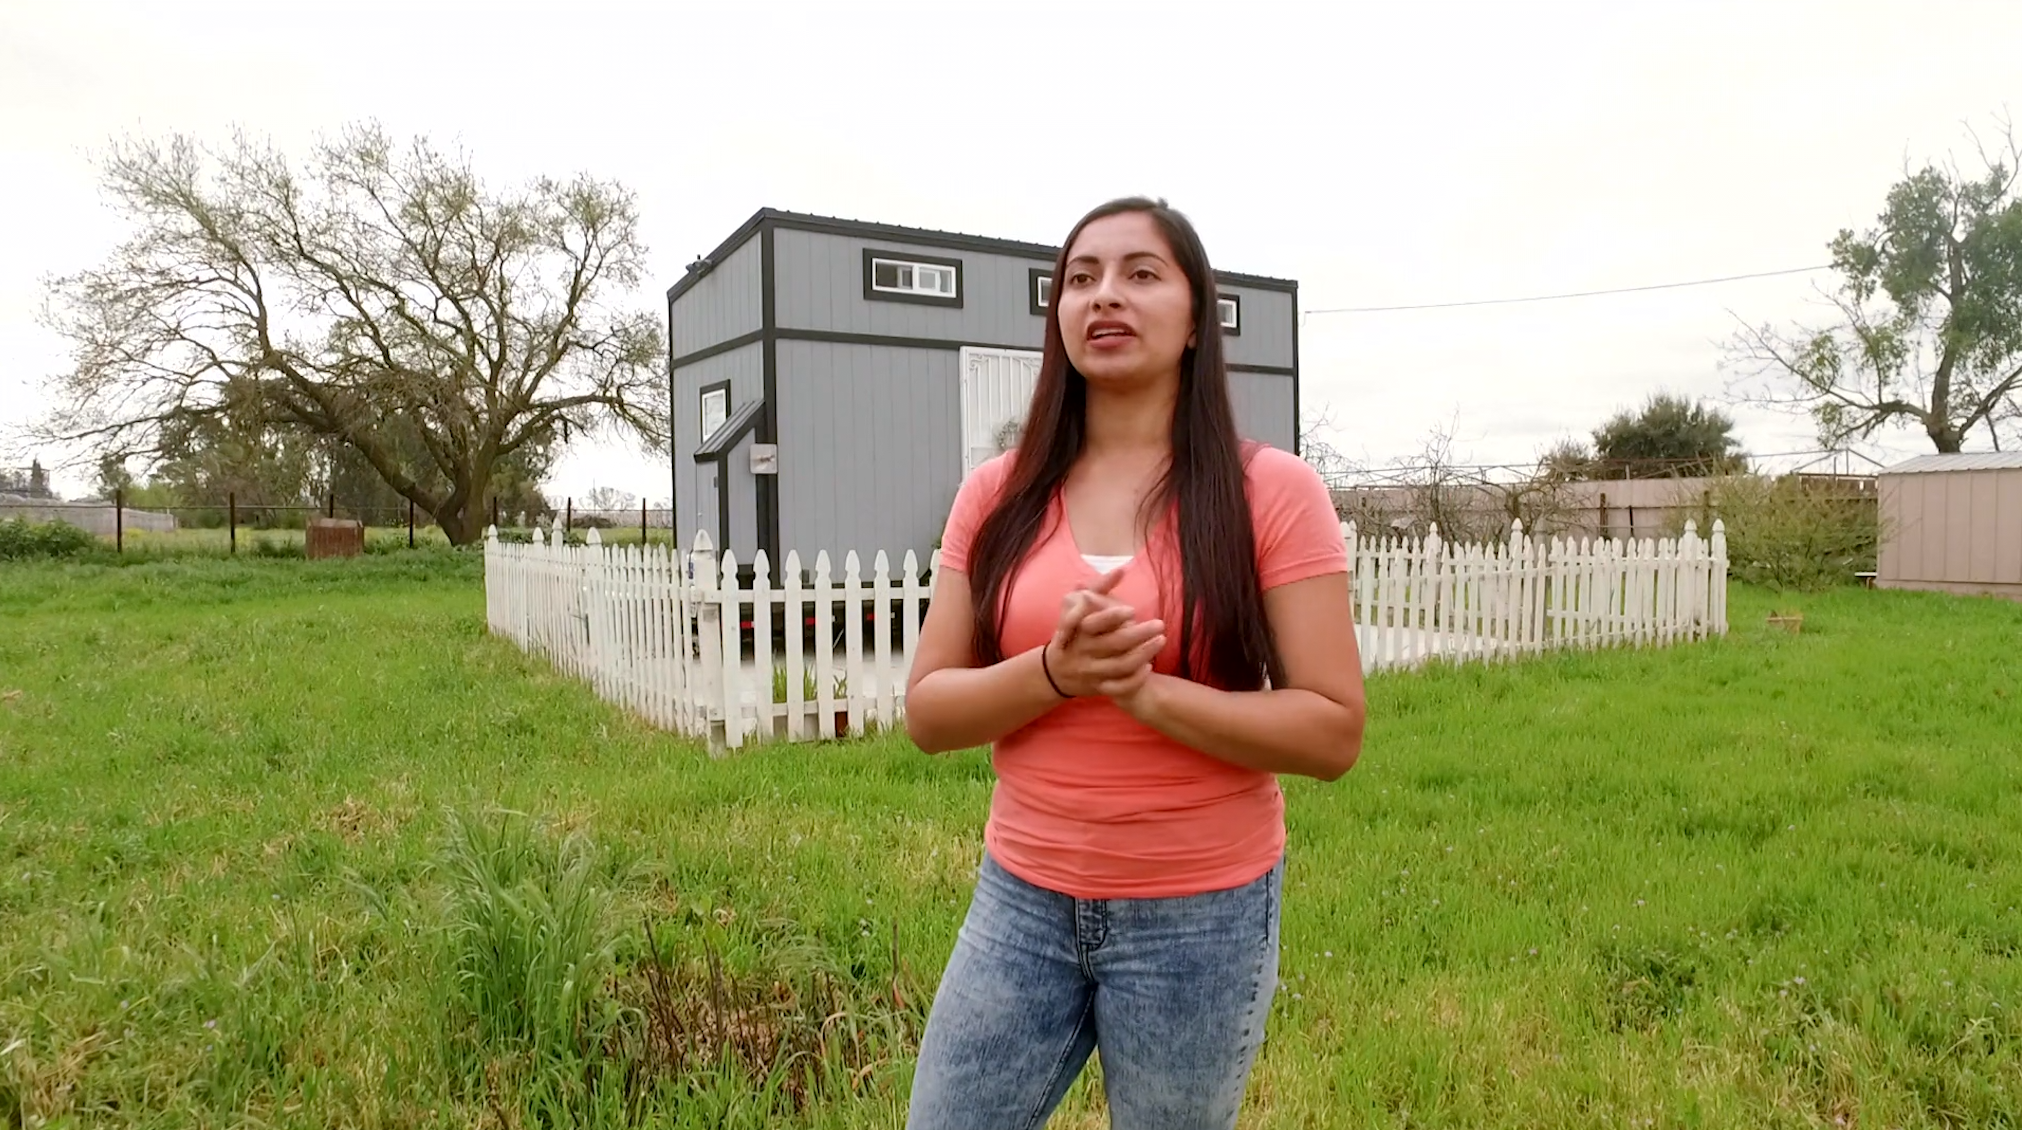 Dream Big, Live Small: Tiny home on wheels allows one homeowner to see the world